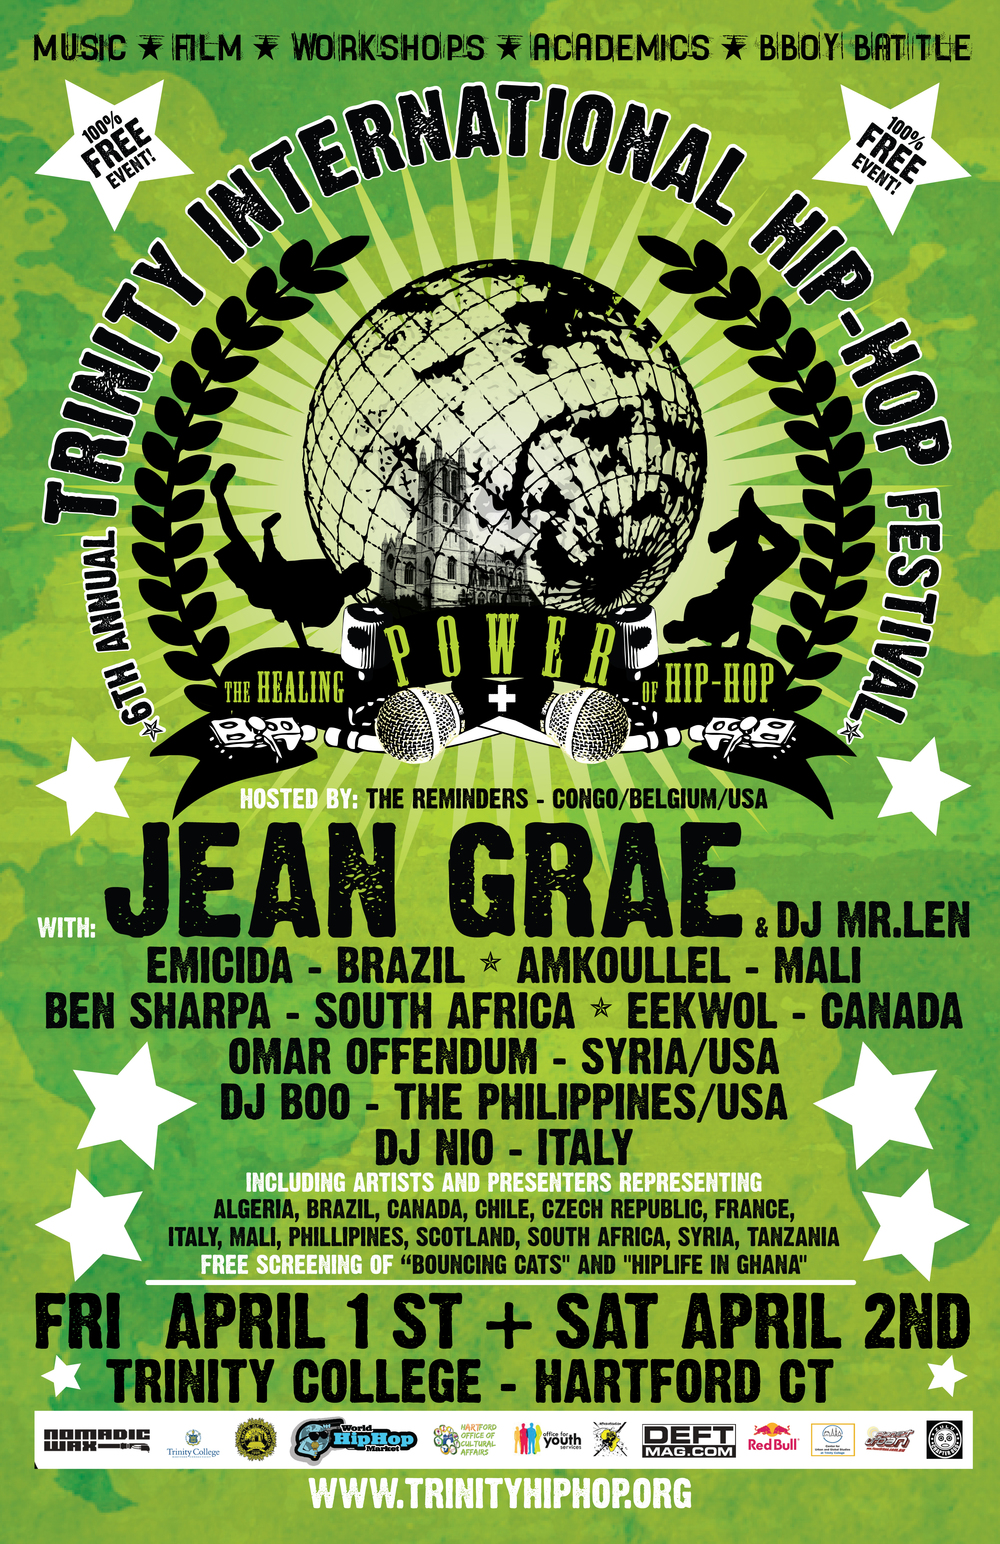 Trinity International Hip Hop Festival (U.S.A.)